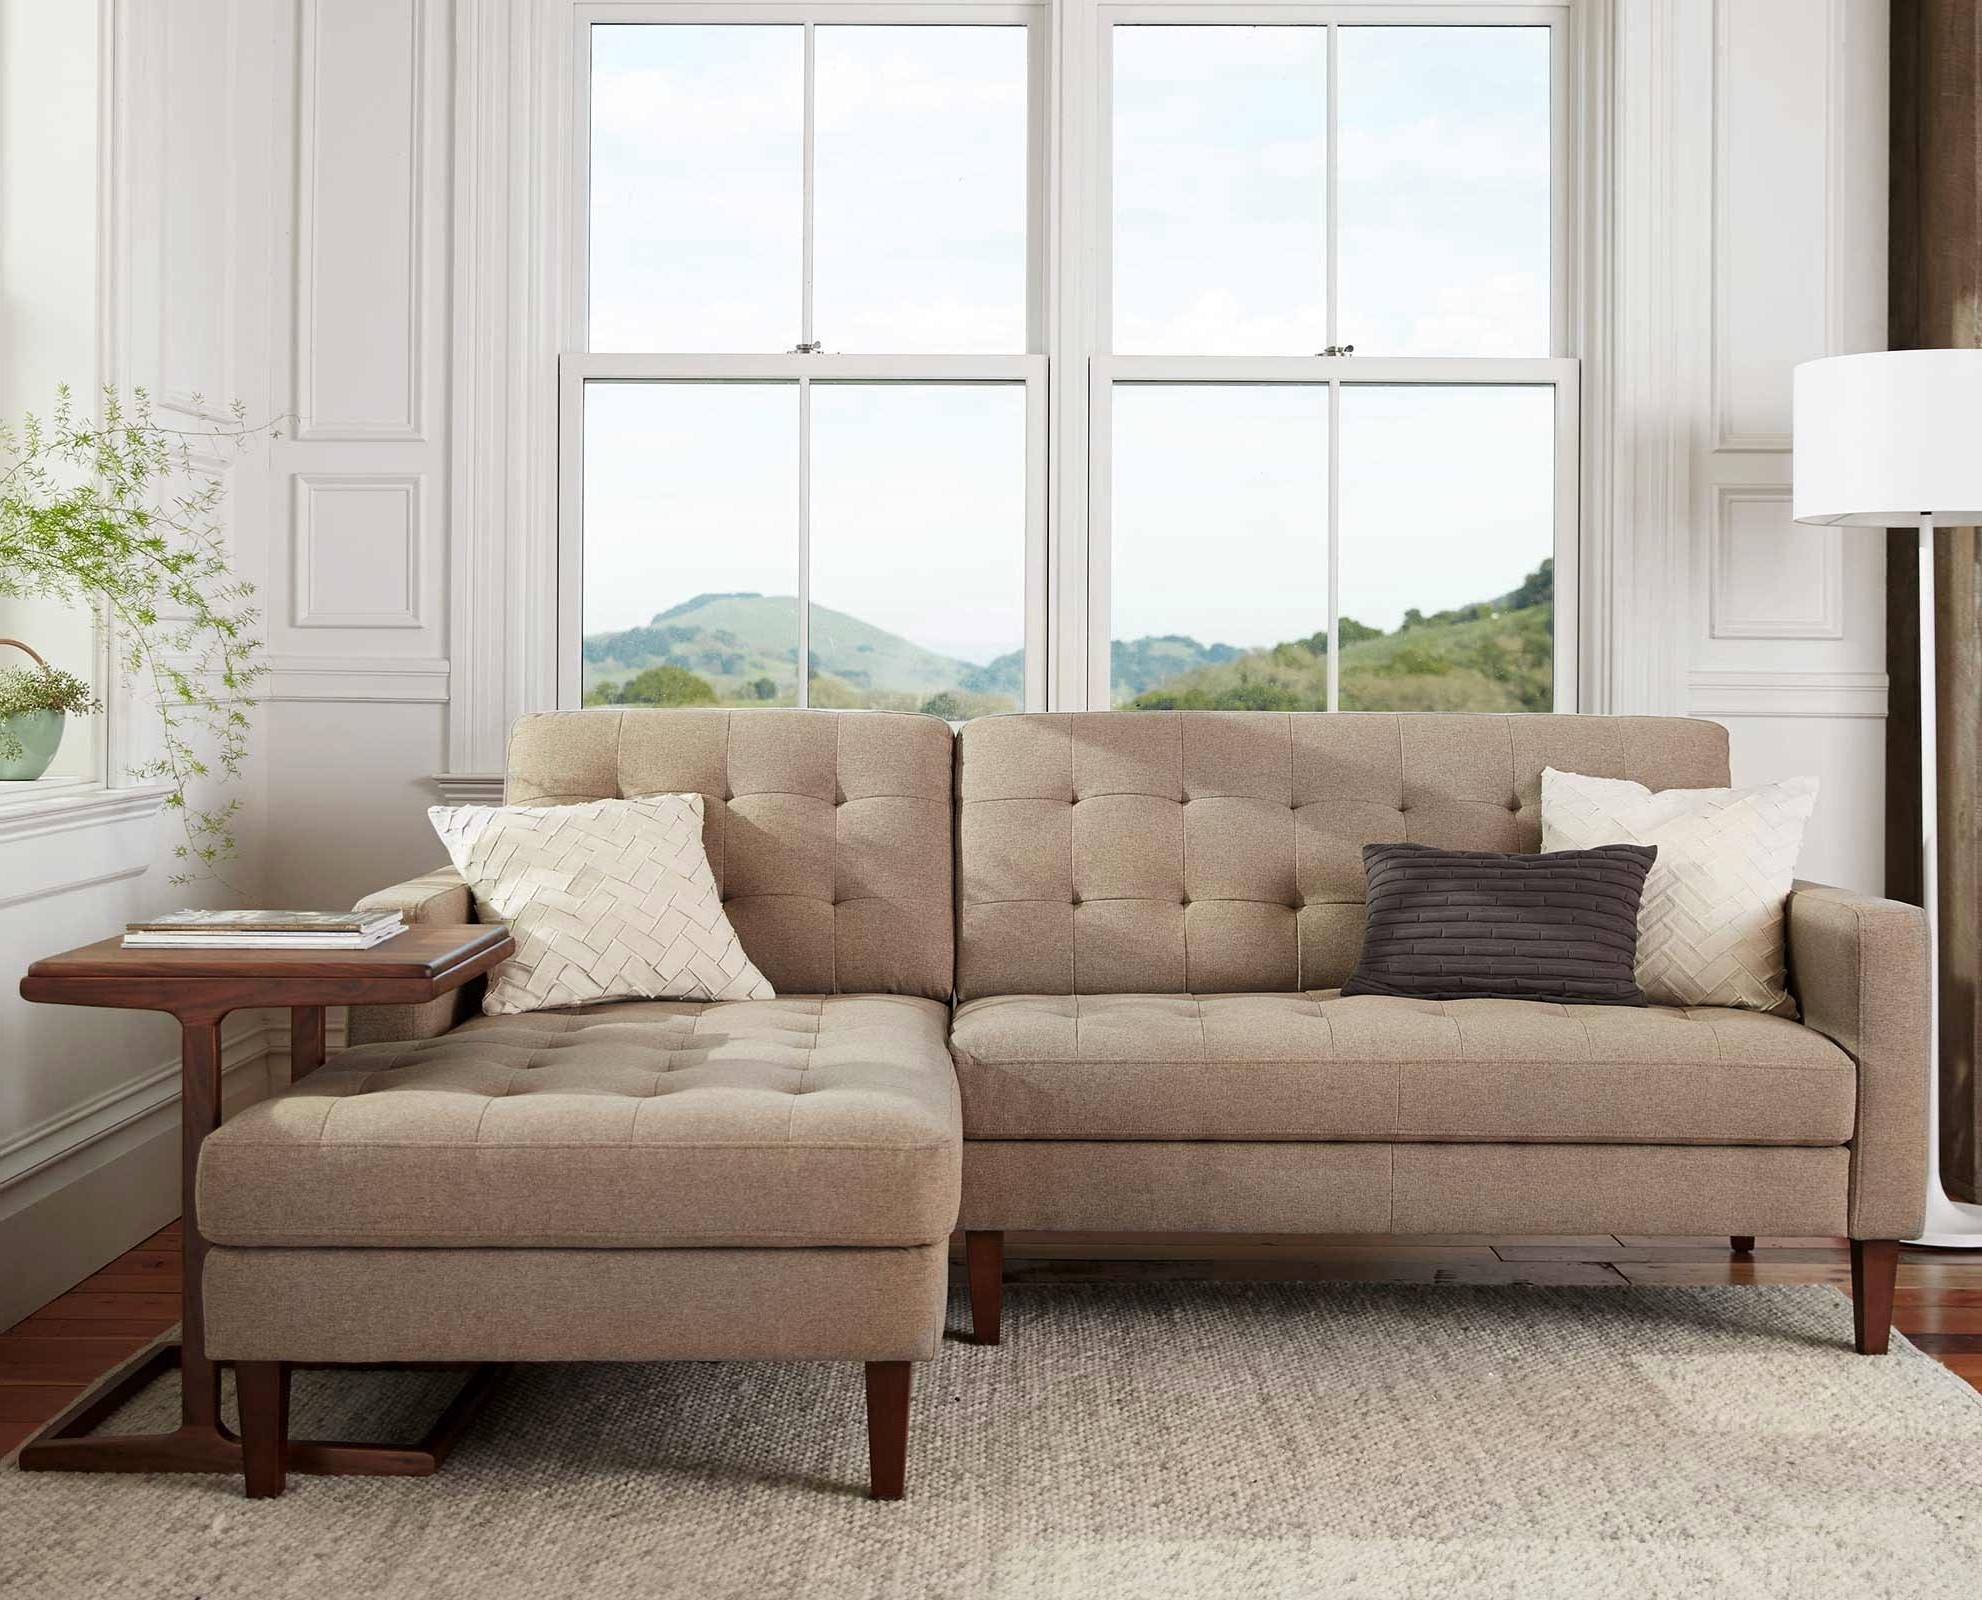 Scandinavian Designs – Create A Relaxing Aesthetic With The Intended For Latest Dania Sectional Sofas (View 5 of 20)